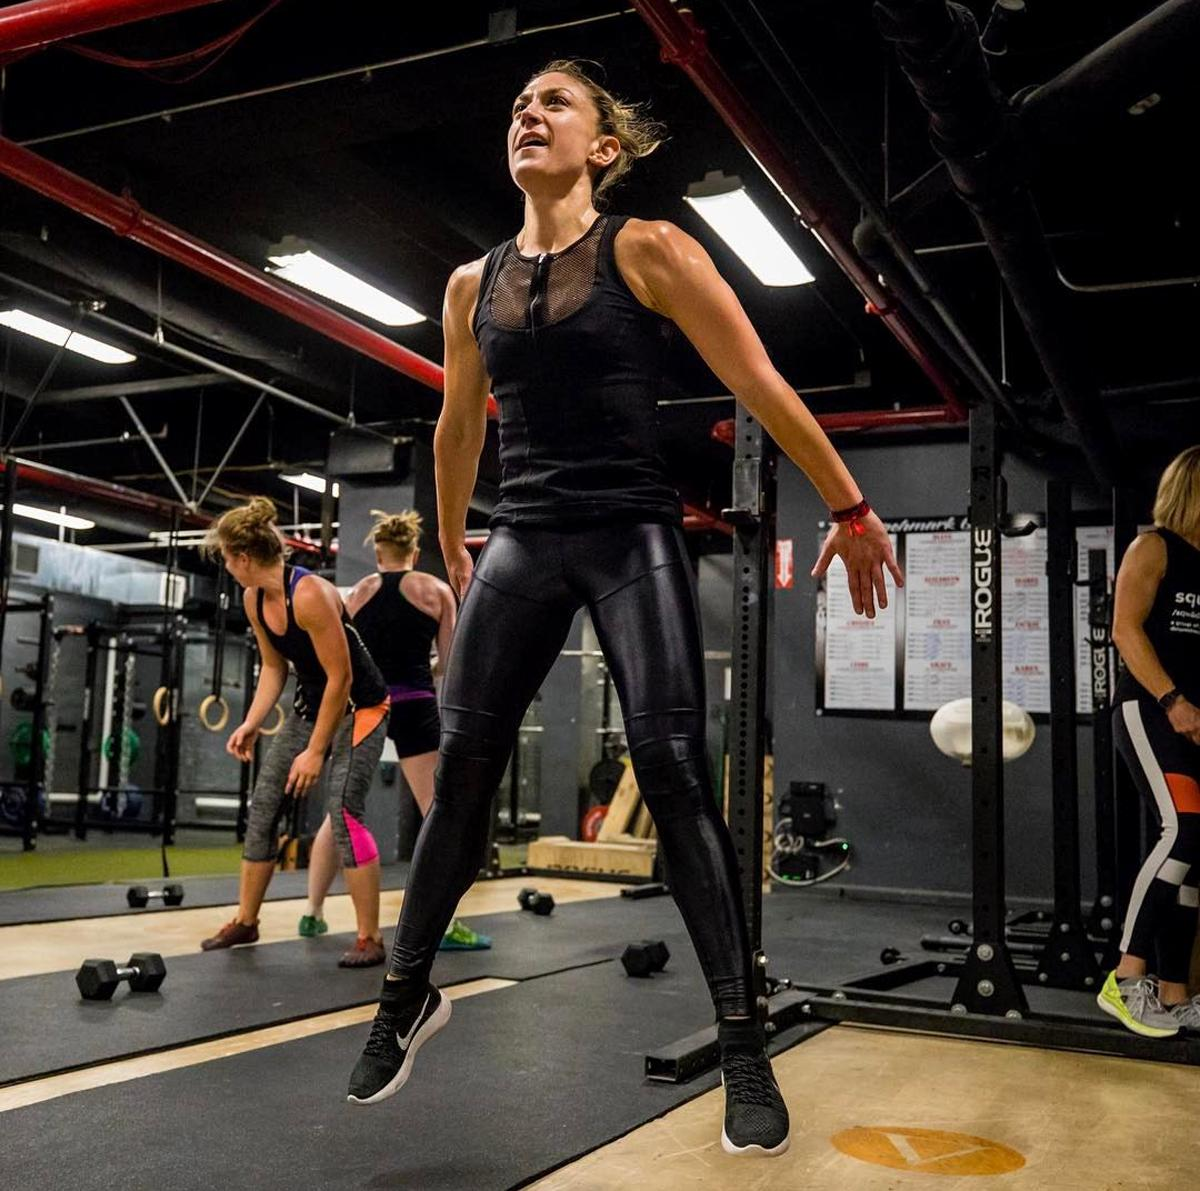 The Wexer platform will gain access to Fortë's live and on-demand content from top boutique fitness studios around the US